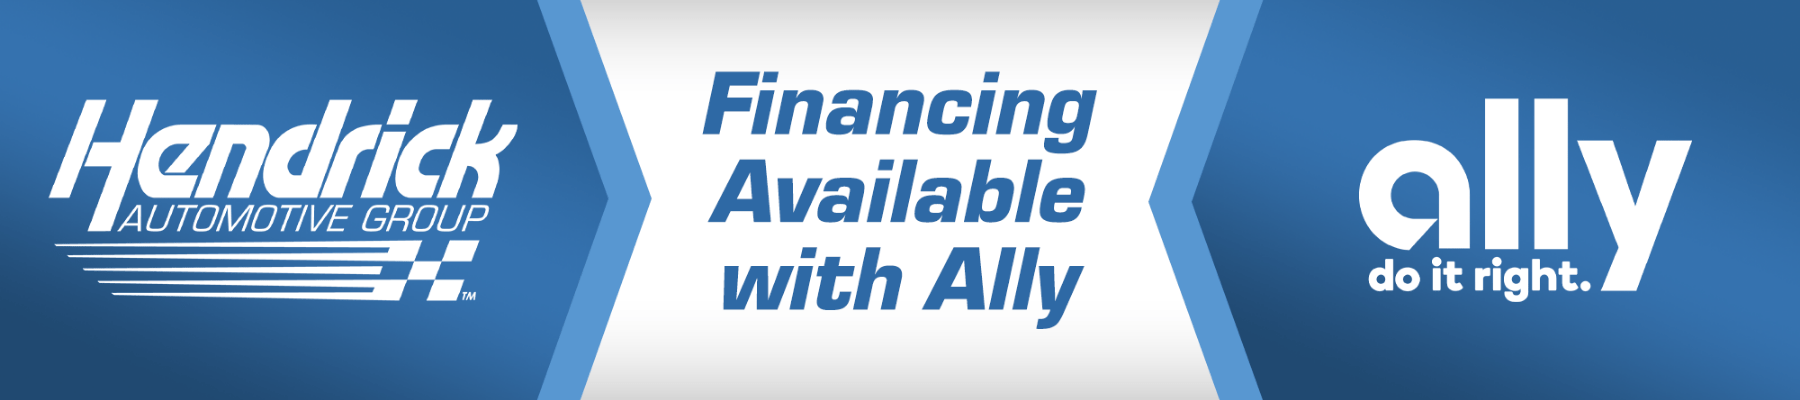 Financing with Ally